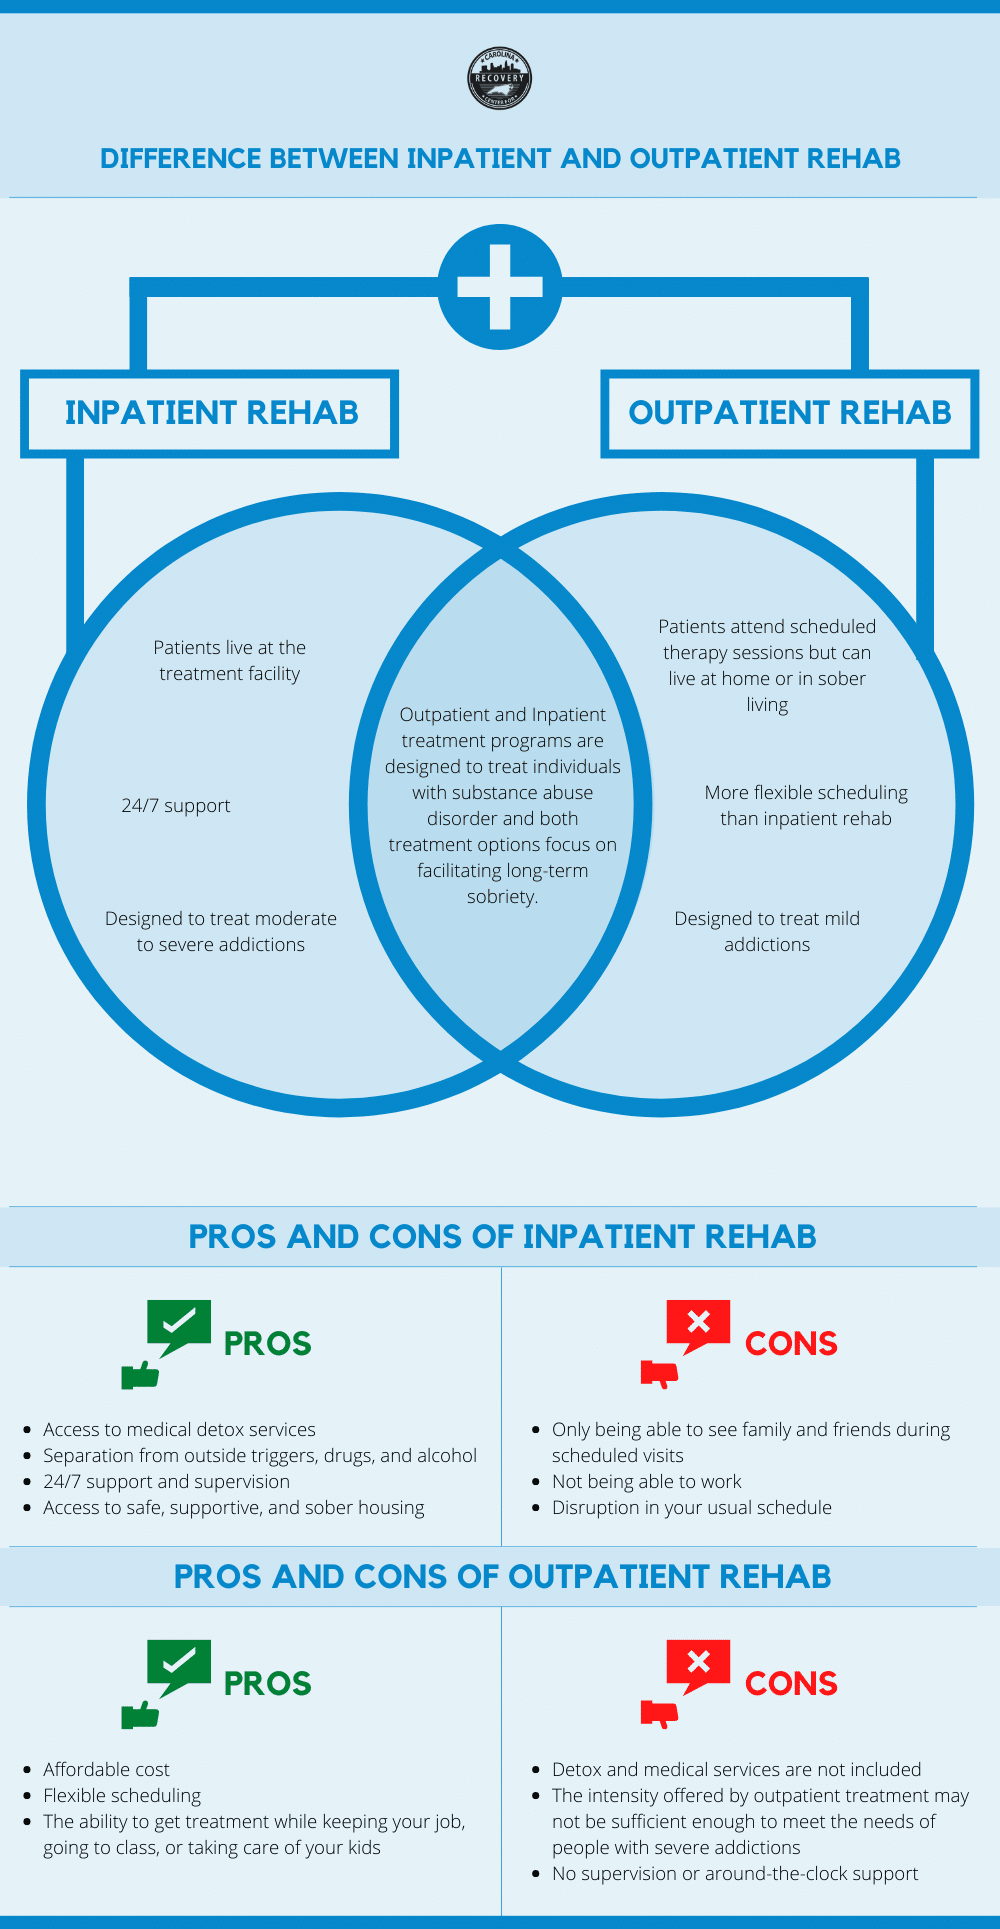 difference Between Inpatient and Outpatient Rehab